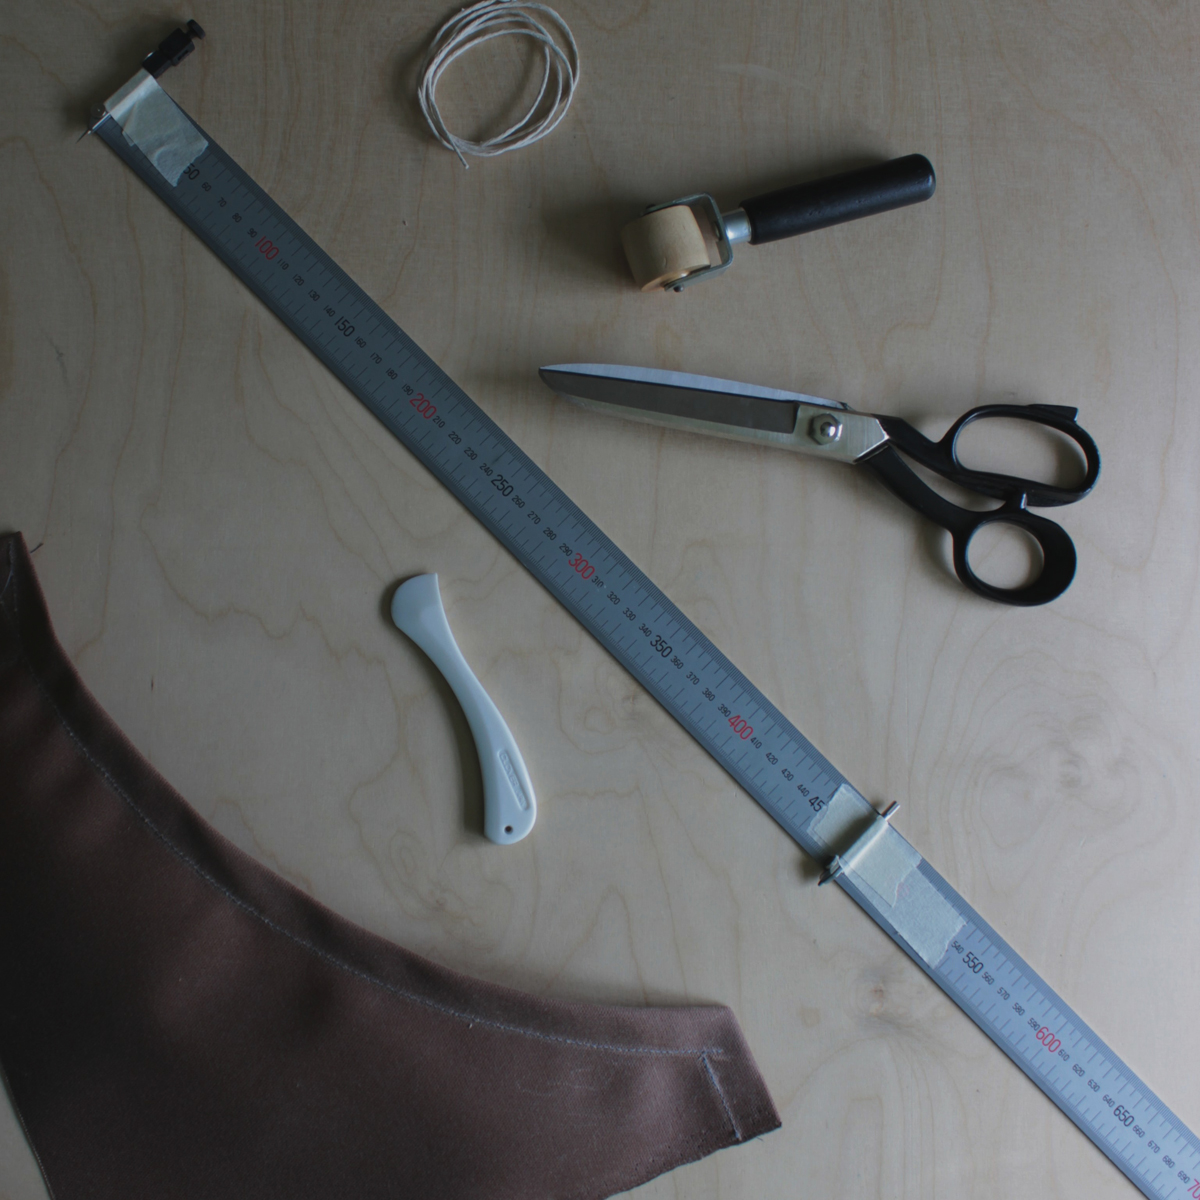 Test piece sewn, and some of the tools used so far (including diy ruler compass!). A few expletives muttered whilst trying to get this curved bit right (!) onto marking out the fabric for real